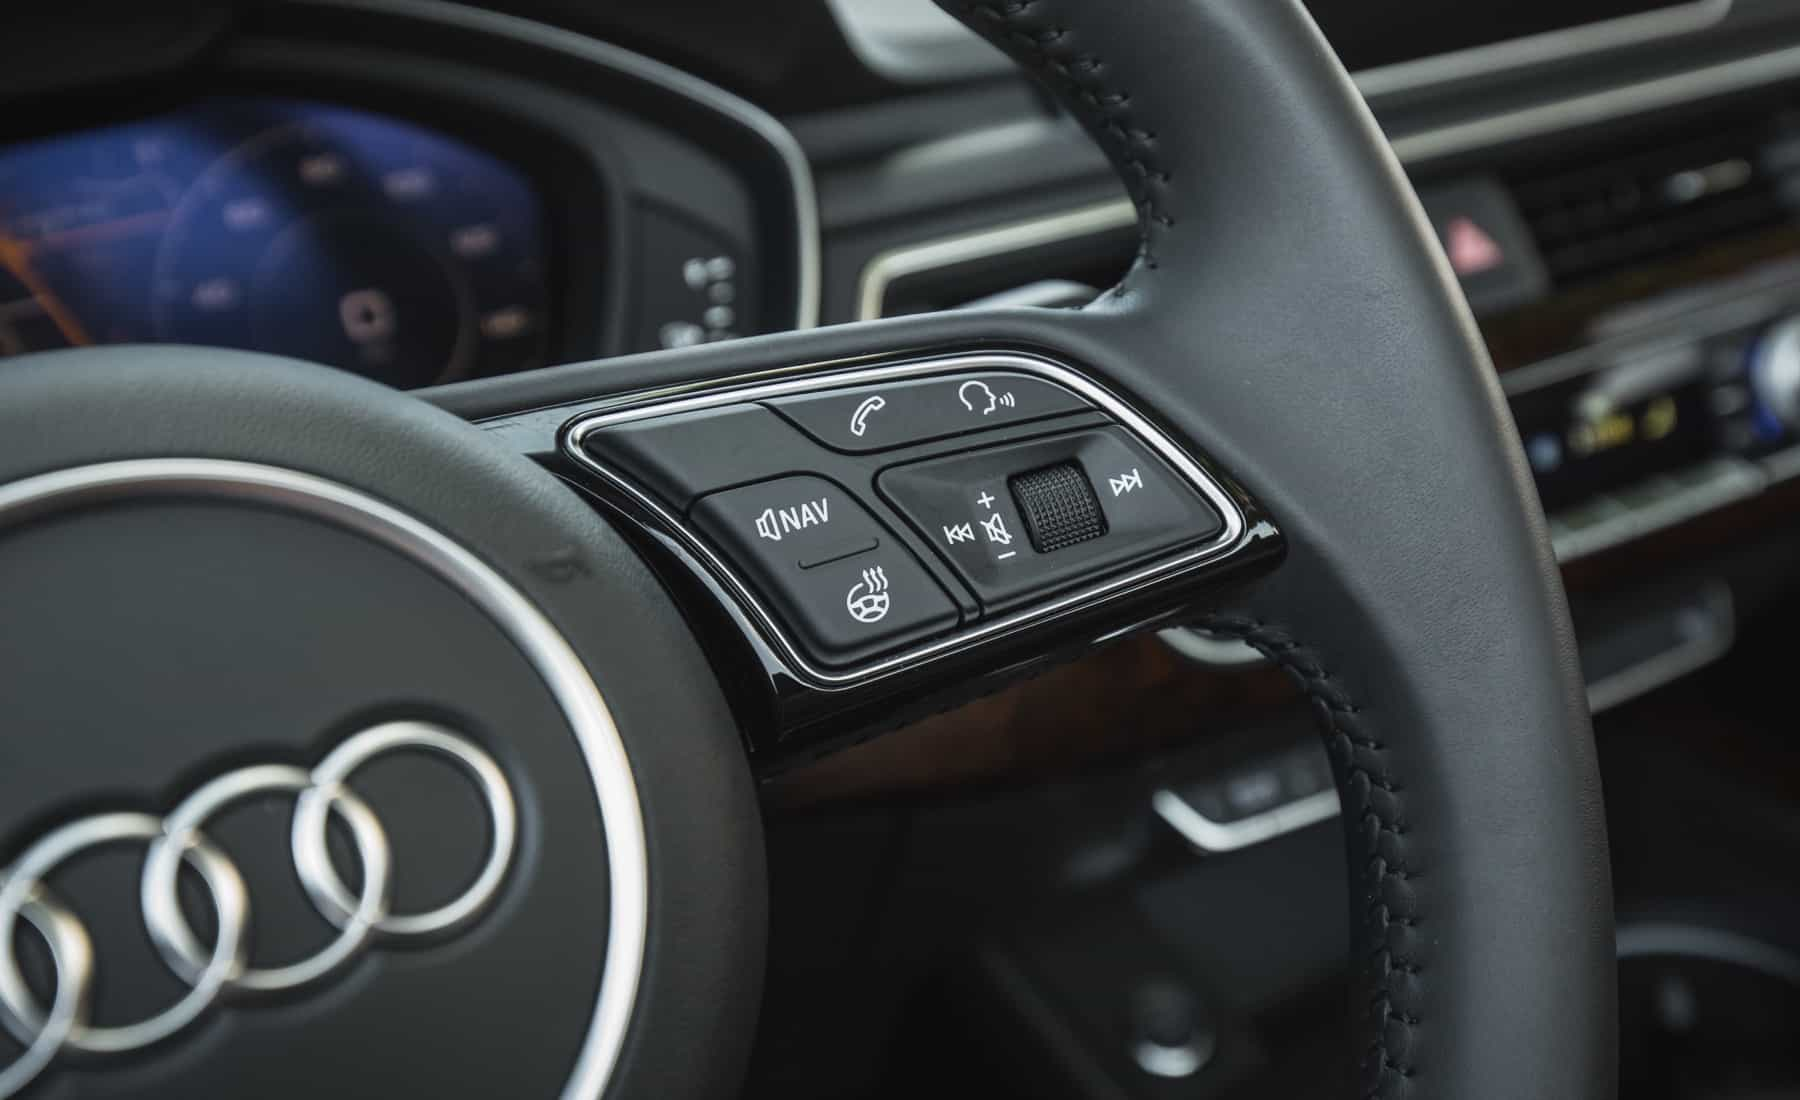 2018 Audi A5 Cabriolet Interior View Steering Control Right (Photo 37 of 45)